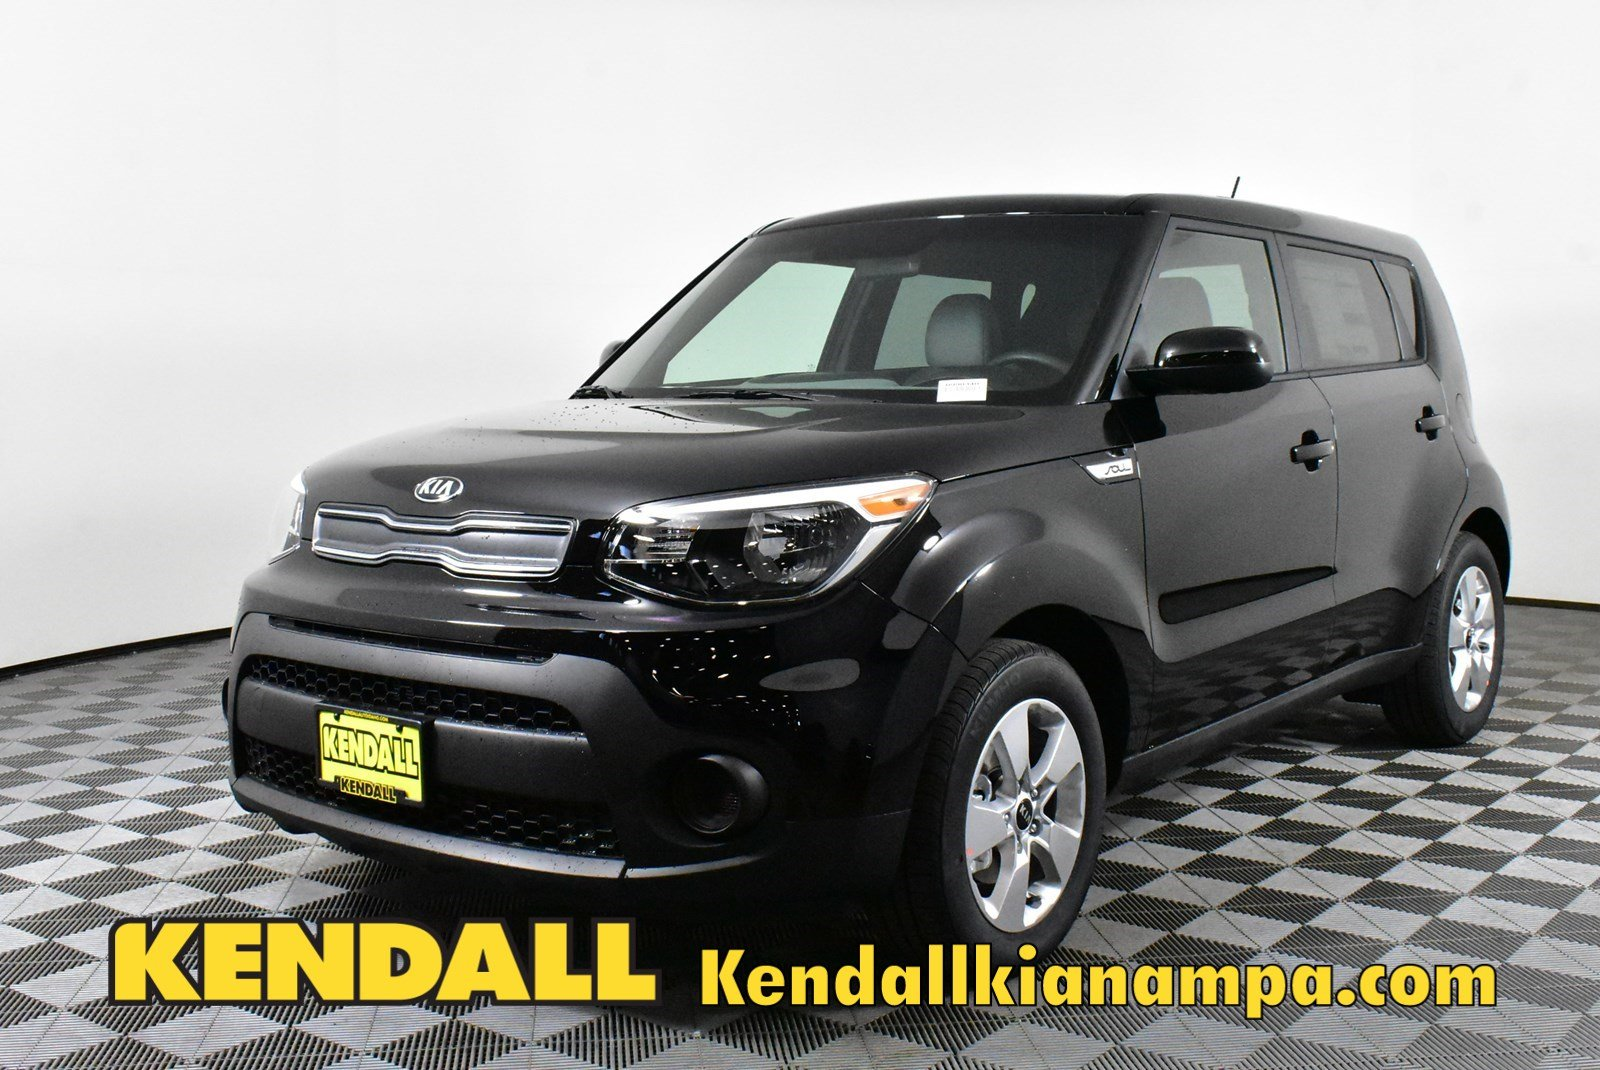 New 2019 Kia Soul Base In Nampa D990340 Kendall At The Idaho Center Auto Mall